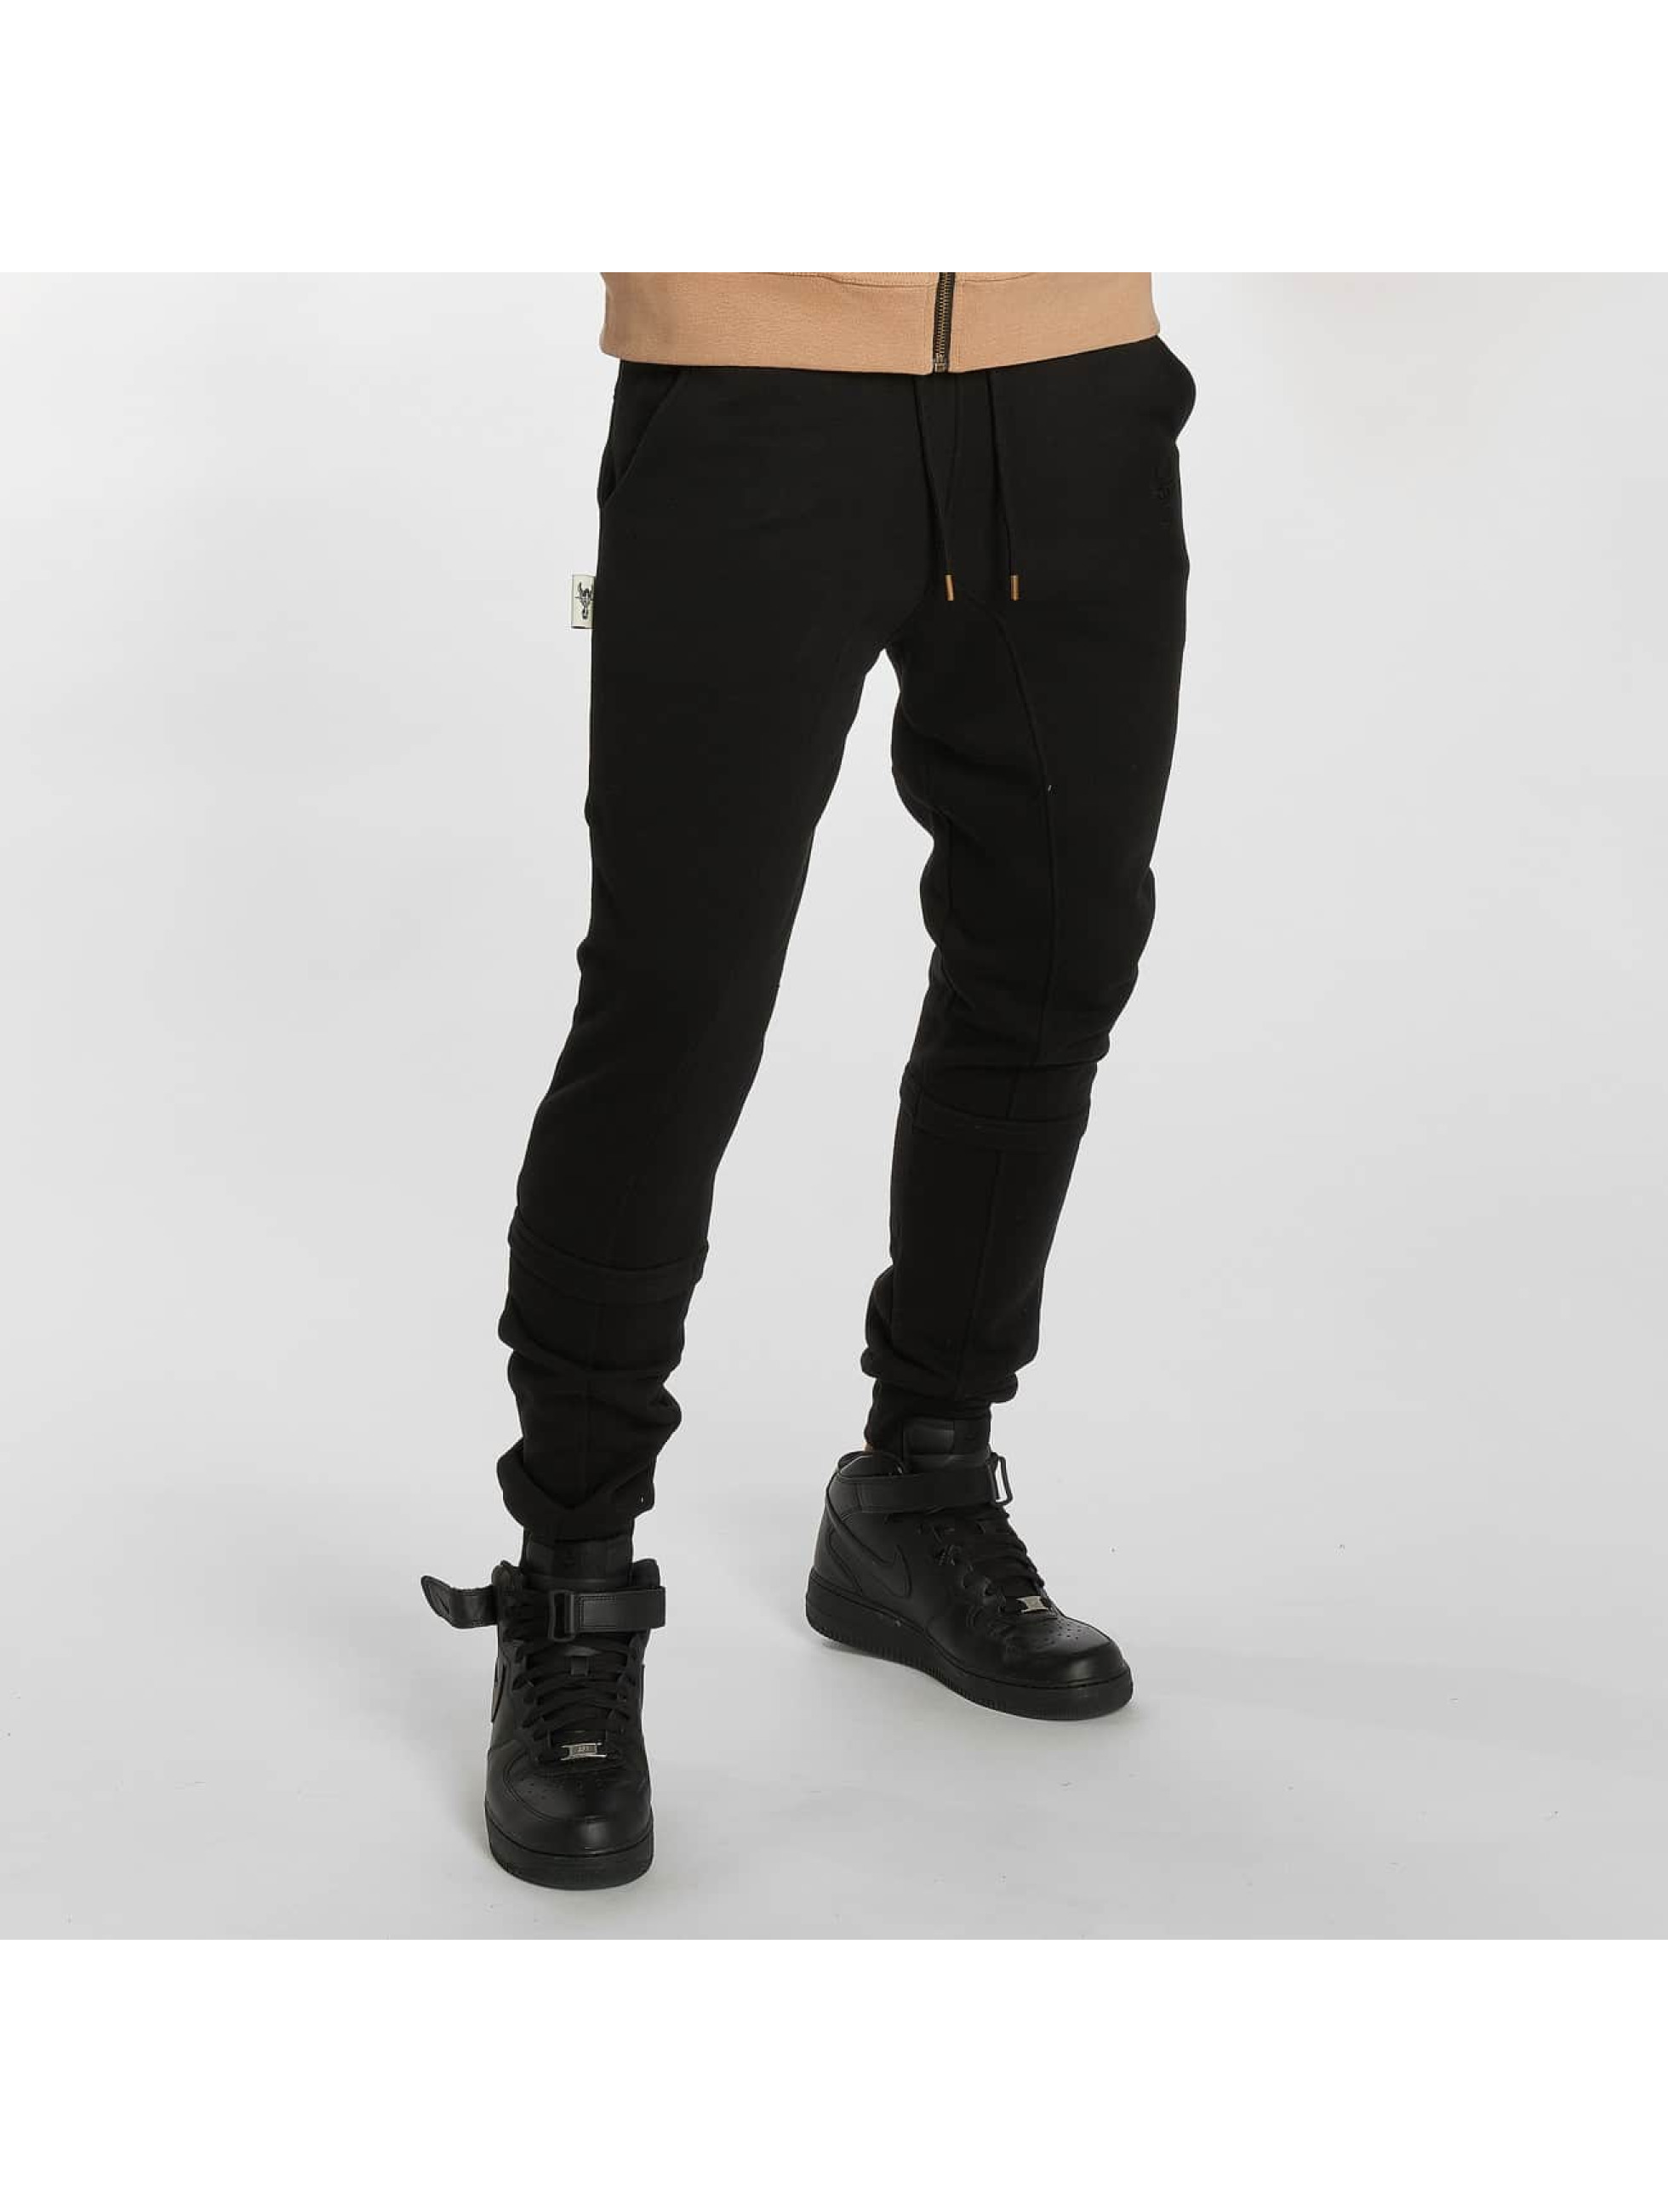 Cavallo de Ferro / Sweat Pant Bull in black S